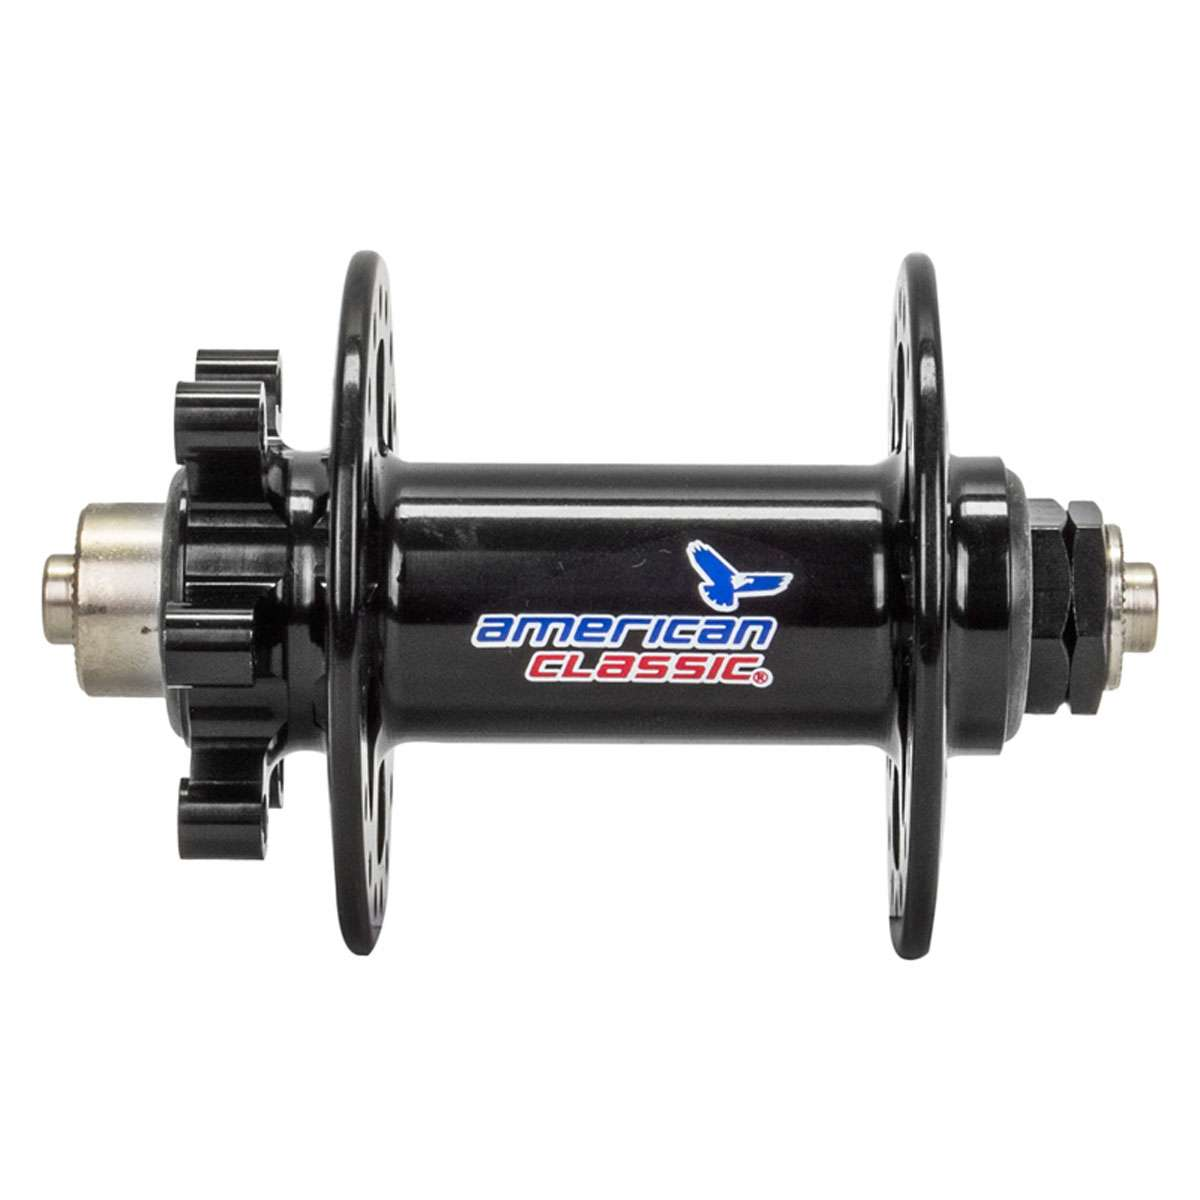 Sun Seeker Replacement Bicycle Front Hub - TANDEM AM CLASSIC 36H BKDISC-130 - 37258